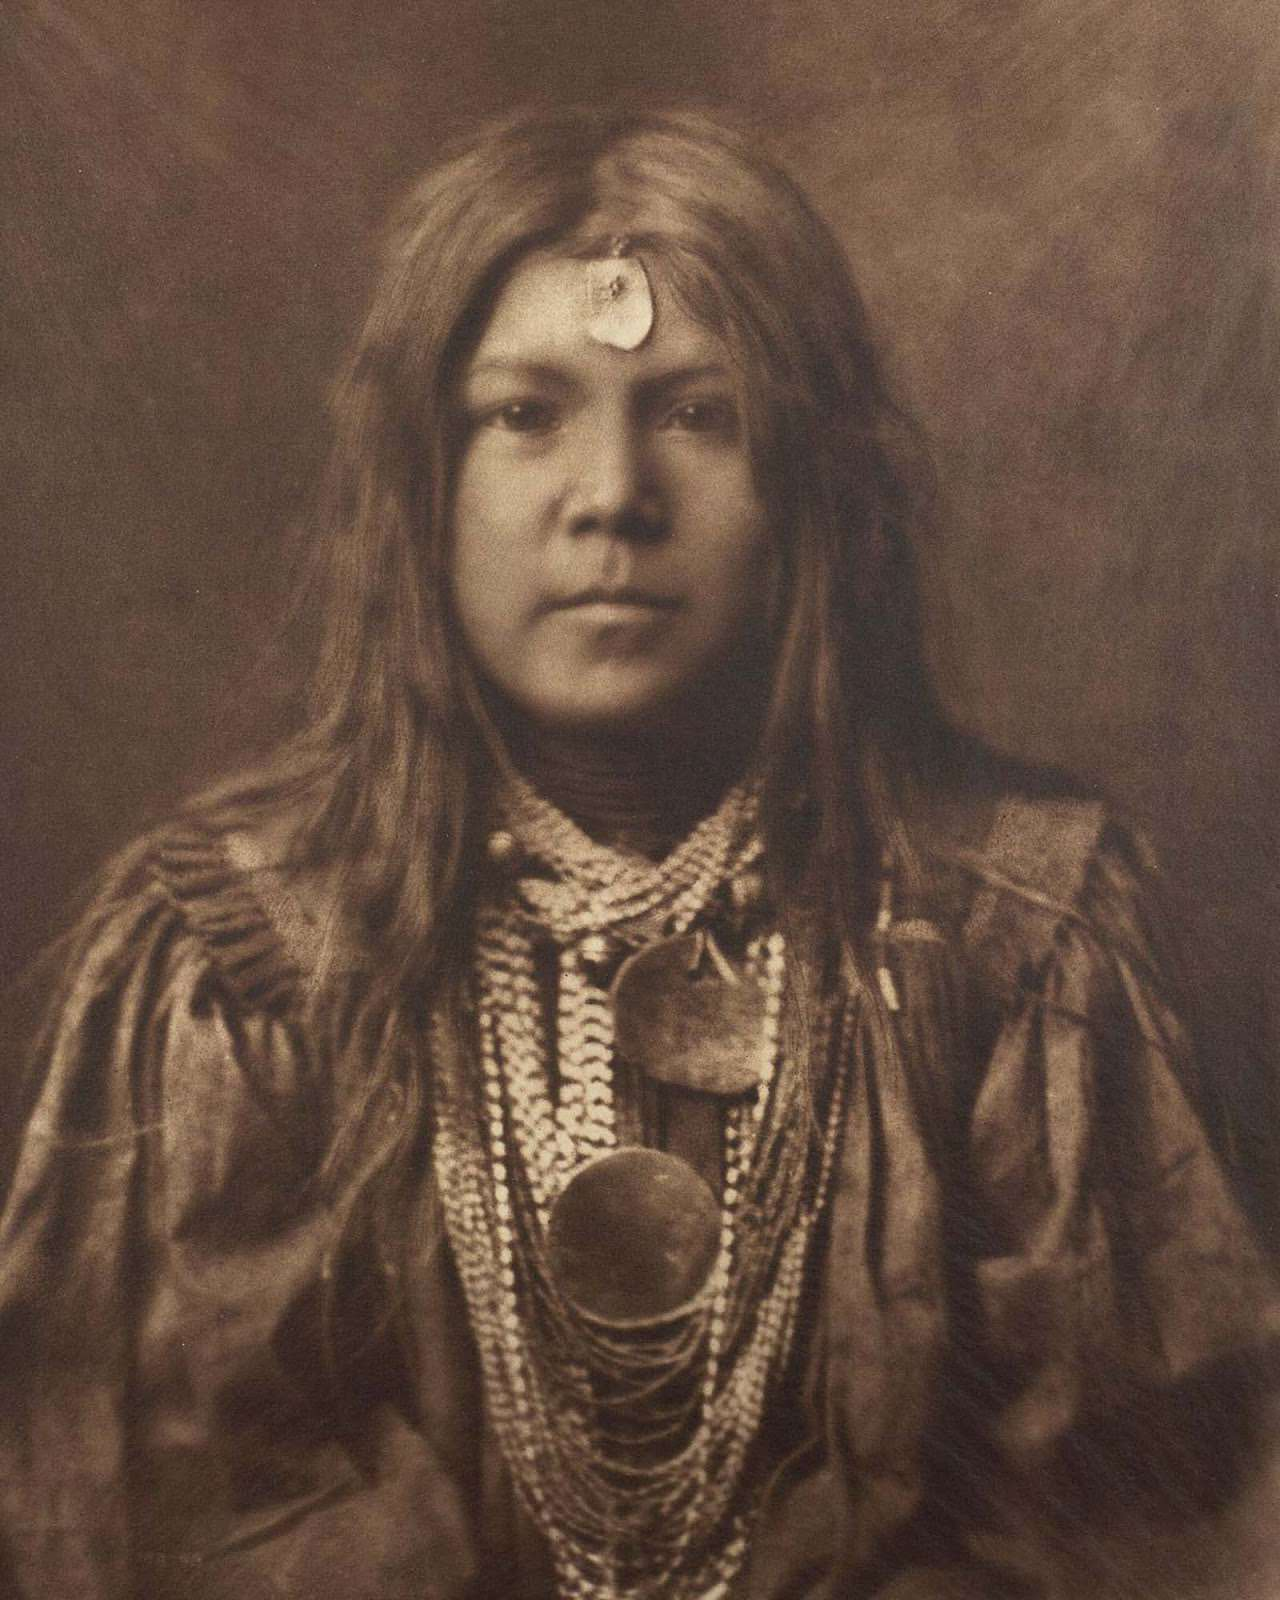 A young member of the Apache tribe. 1910.